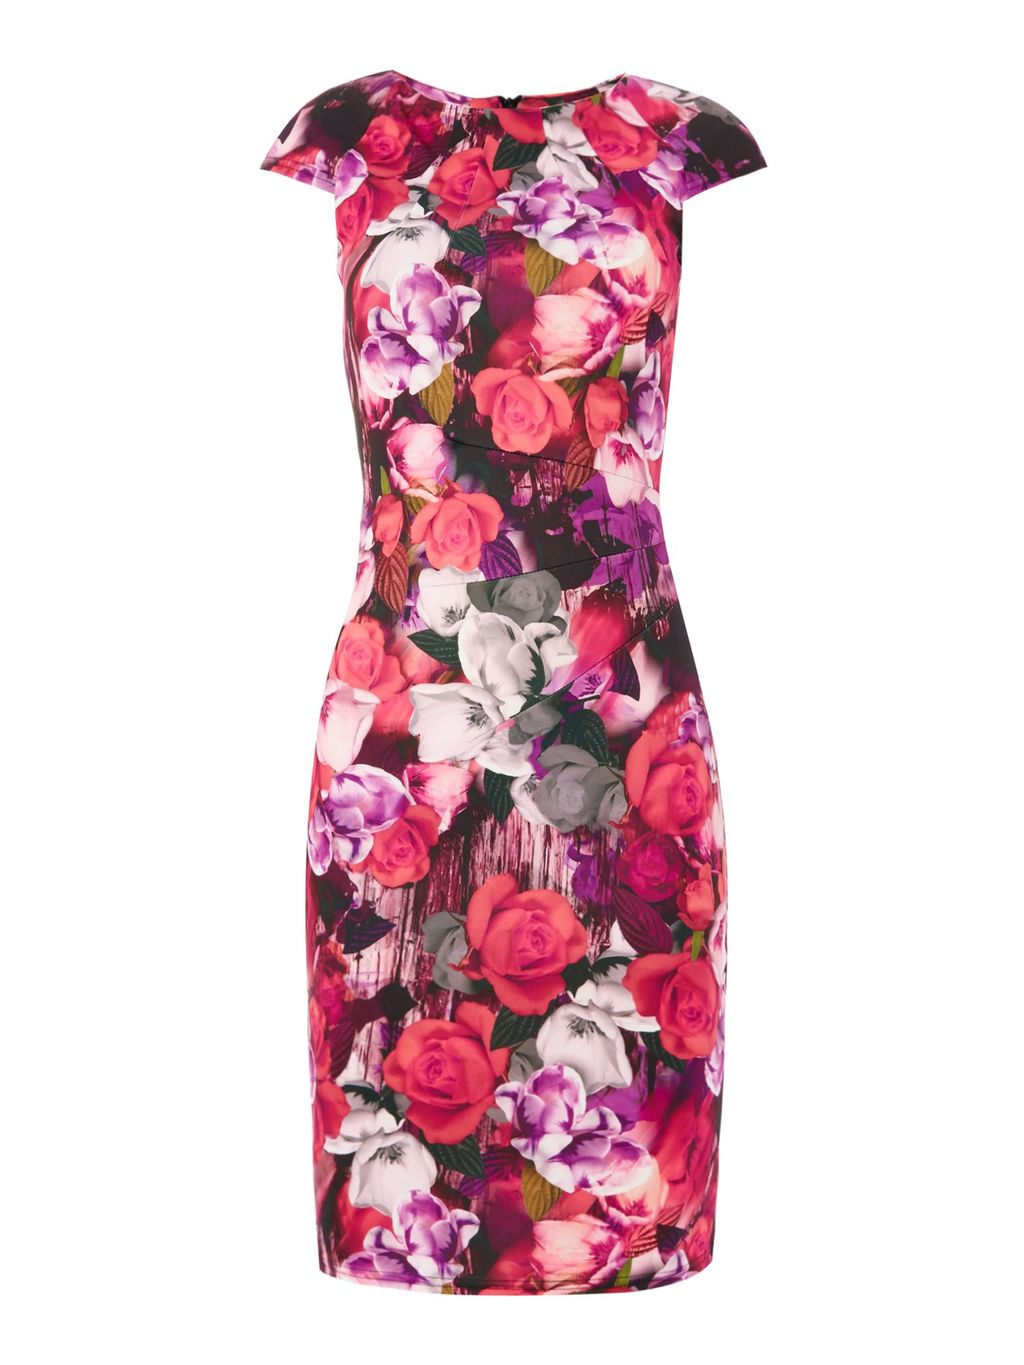 Cap Sleeve Round Neck Floral Bodycon Dress, Multi Coloured - style: shift; sleeve style: capped; fit: tailored/fitted; secondary colour: white; predominant colour: hot pink; length: on the knee; fibres: polyester/polyamide - stretch; occasions: occasion; neckline: crew; sleeve length: short sleeve; pattern type: fabric; pattern: florals; texture group: other - light to midweight; season: s/s 2016; wardrobe: event